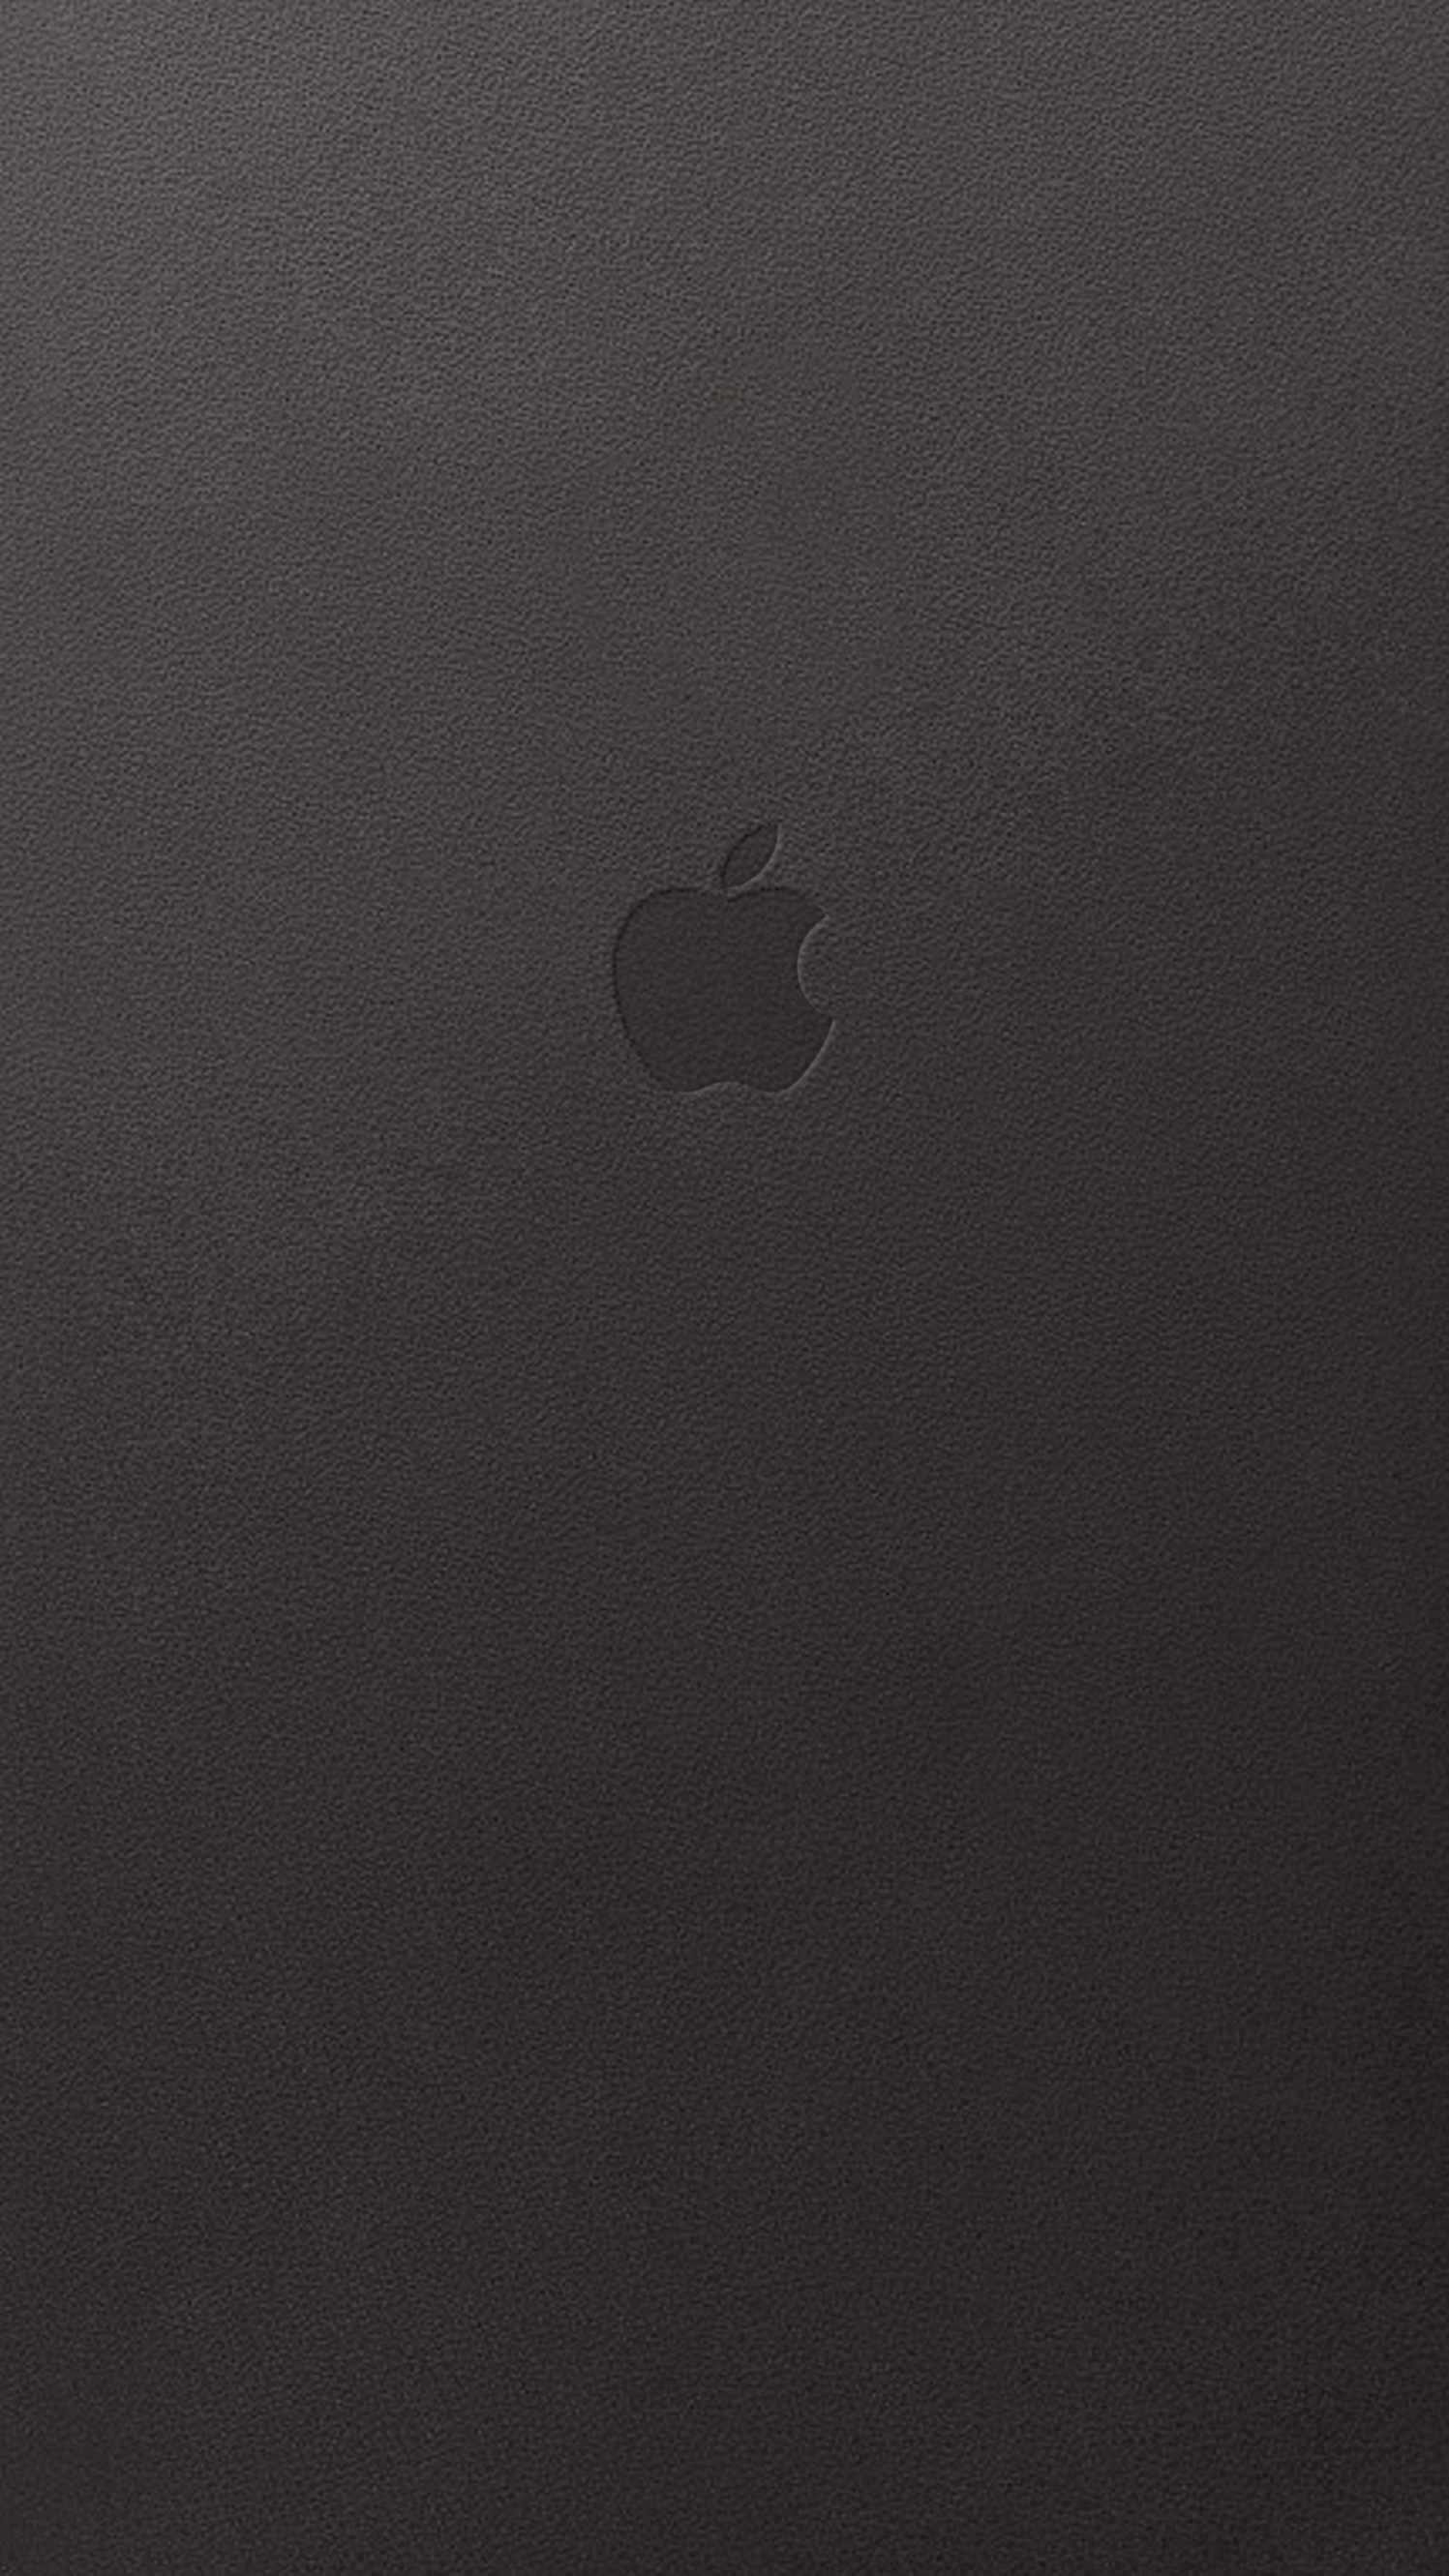 Fnatic Wallpaper Iphone These Wallpapers Will Match Your Apple Leather Case